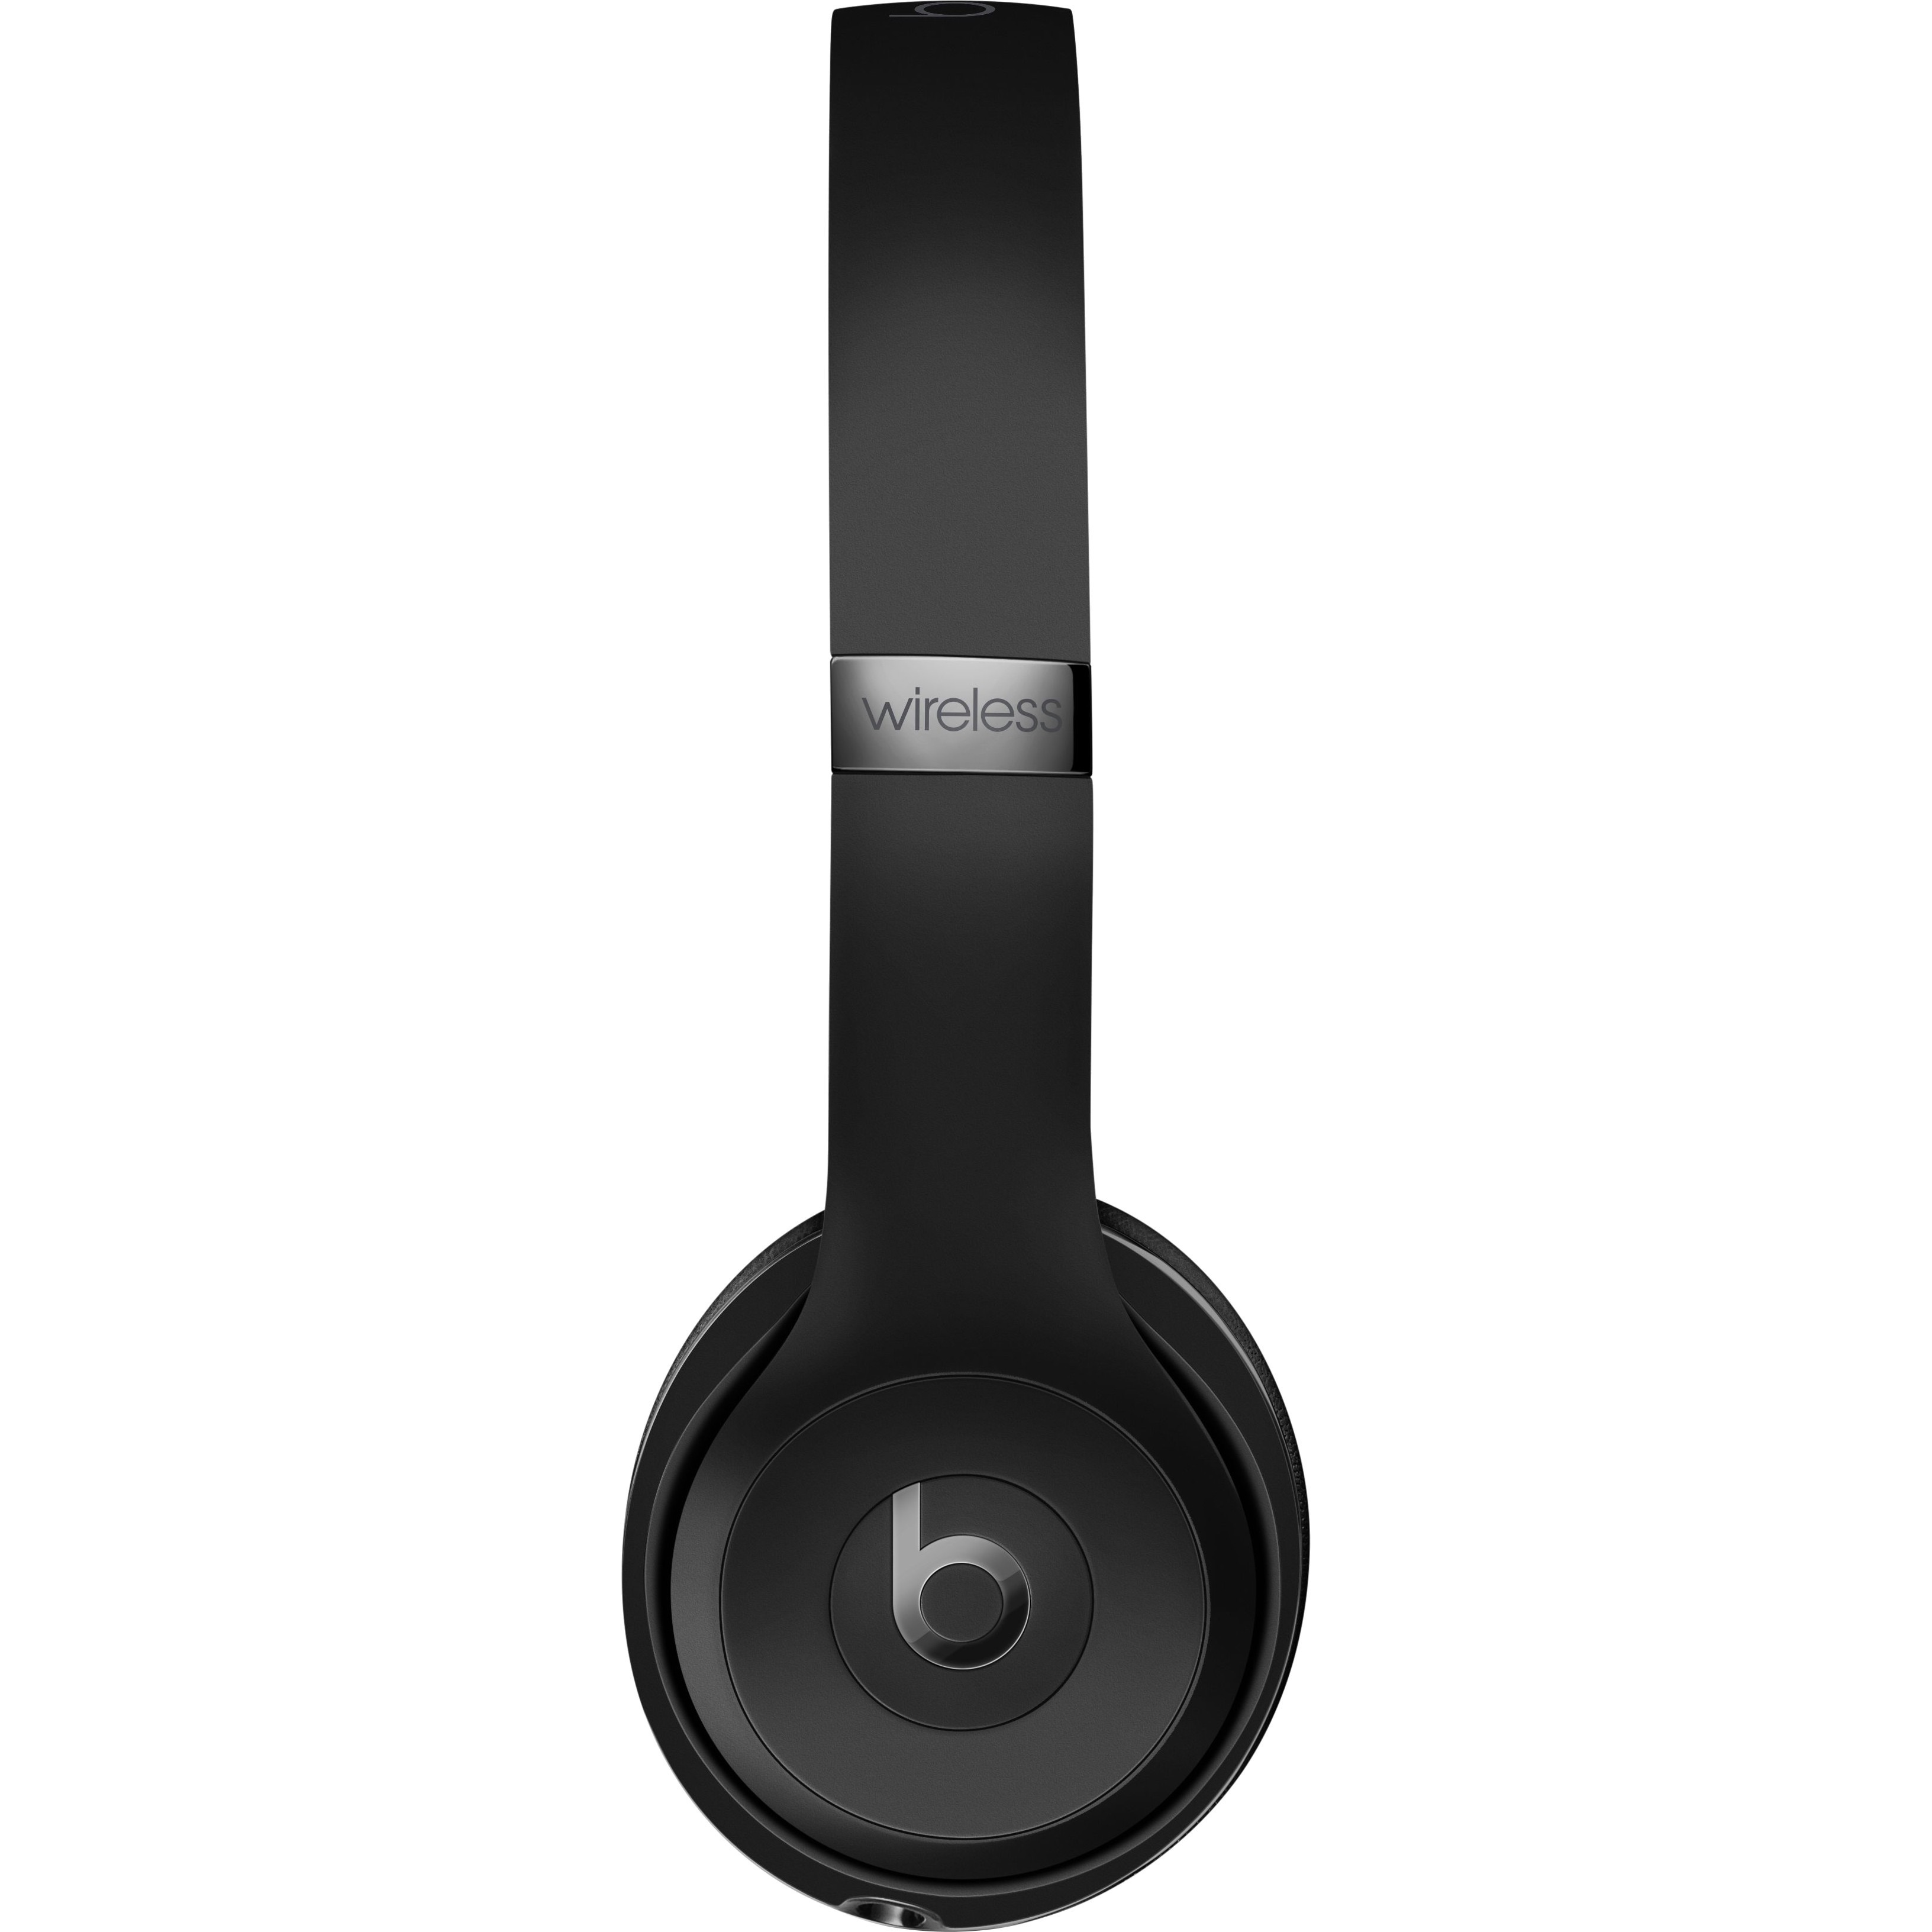 Beats by Dr. Dre Solo3 Wired/Wireless Bluetooth Stereo Headset - Over-the-head - Circumaural - Black